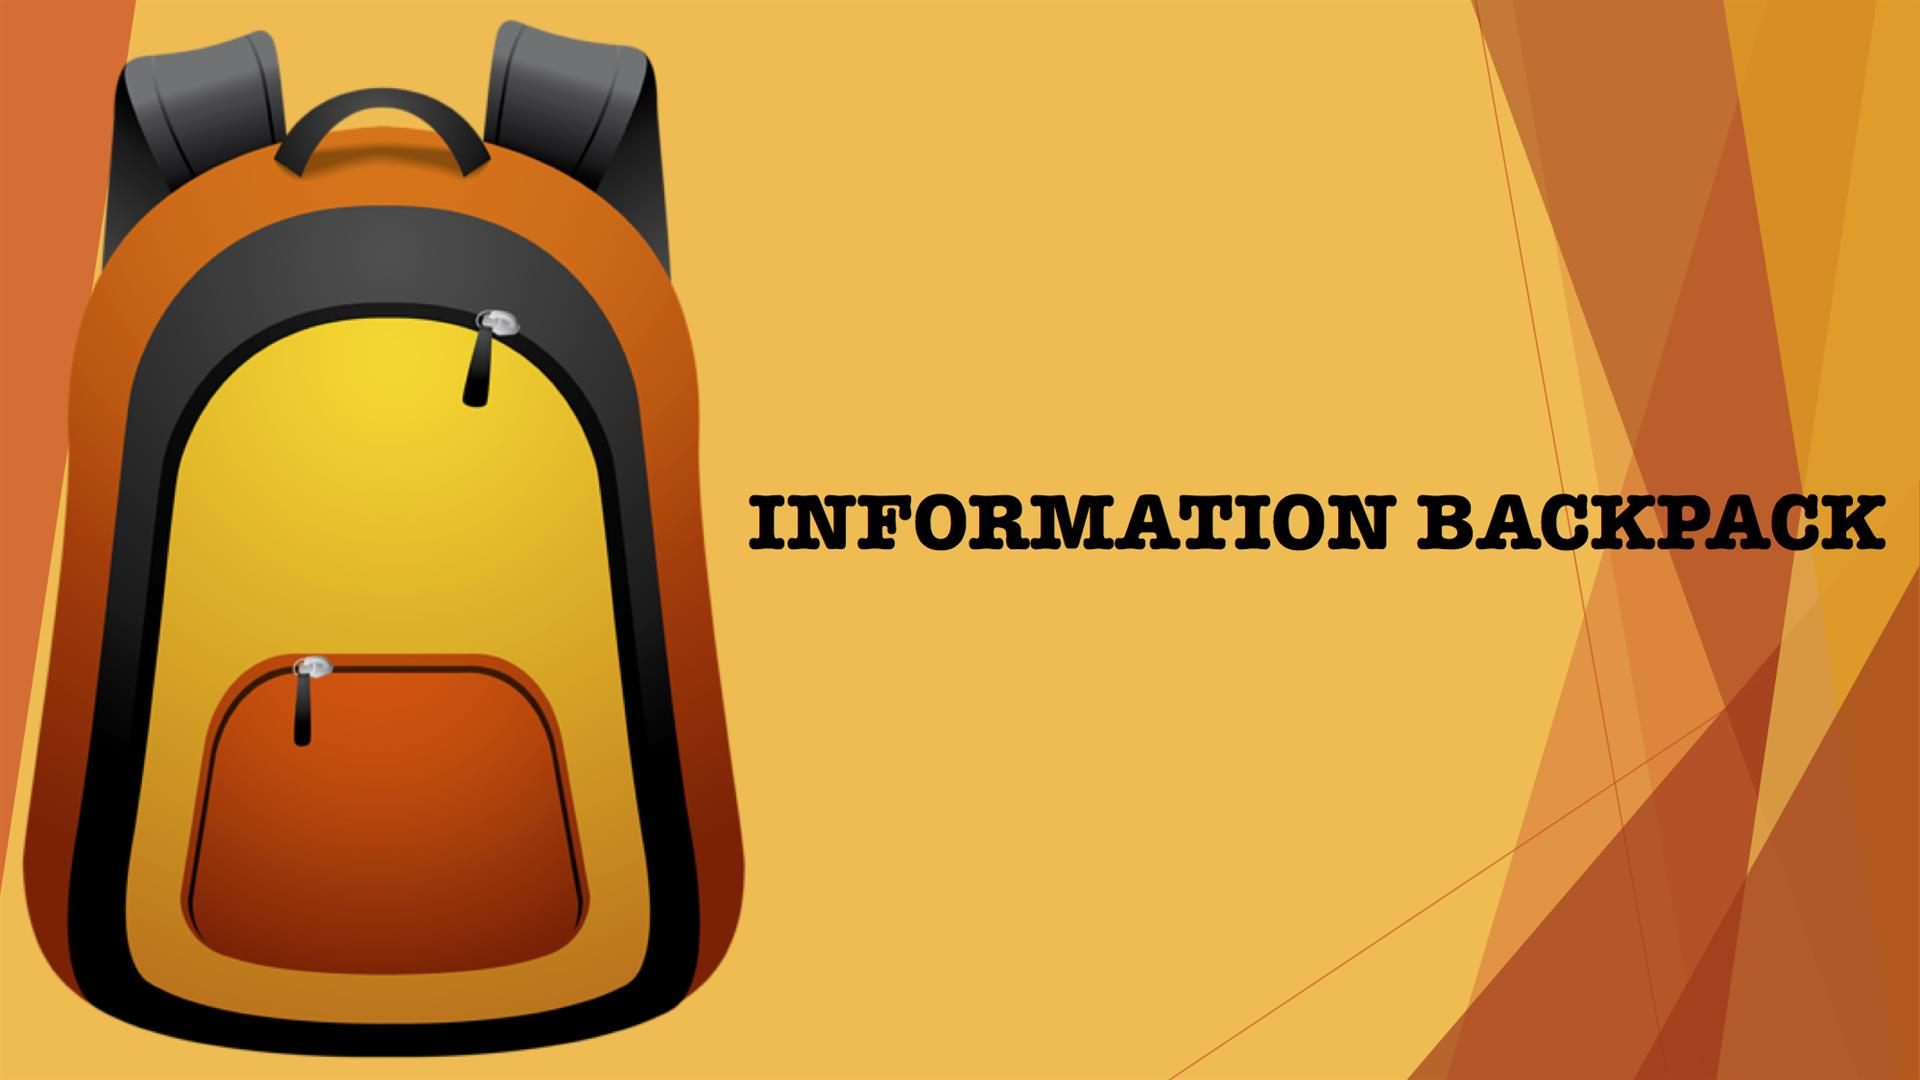 Information Backpack with logo